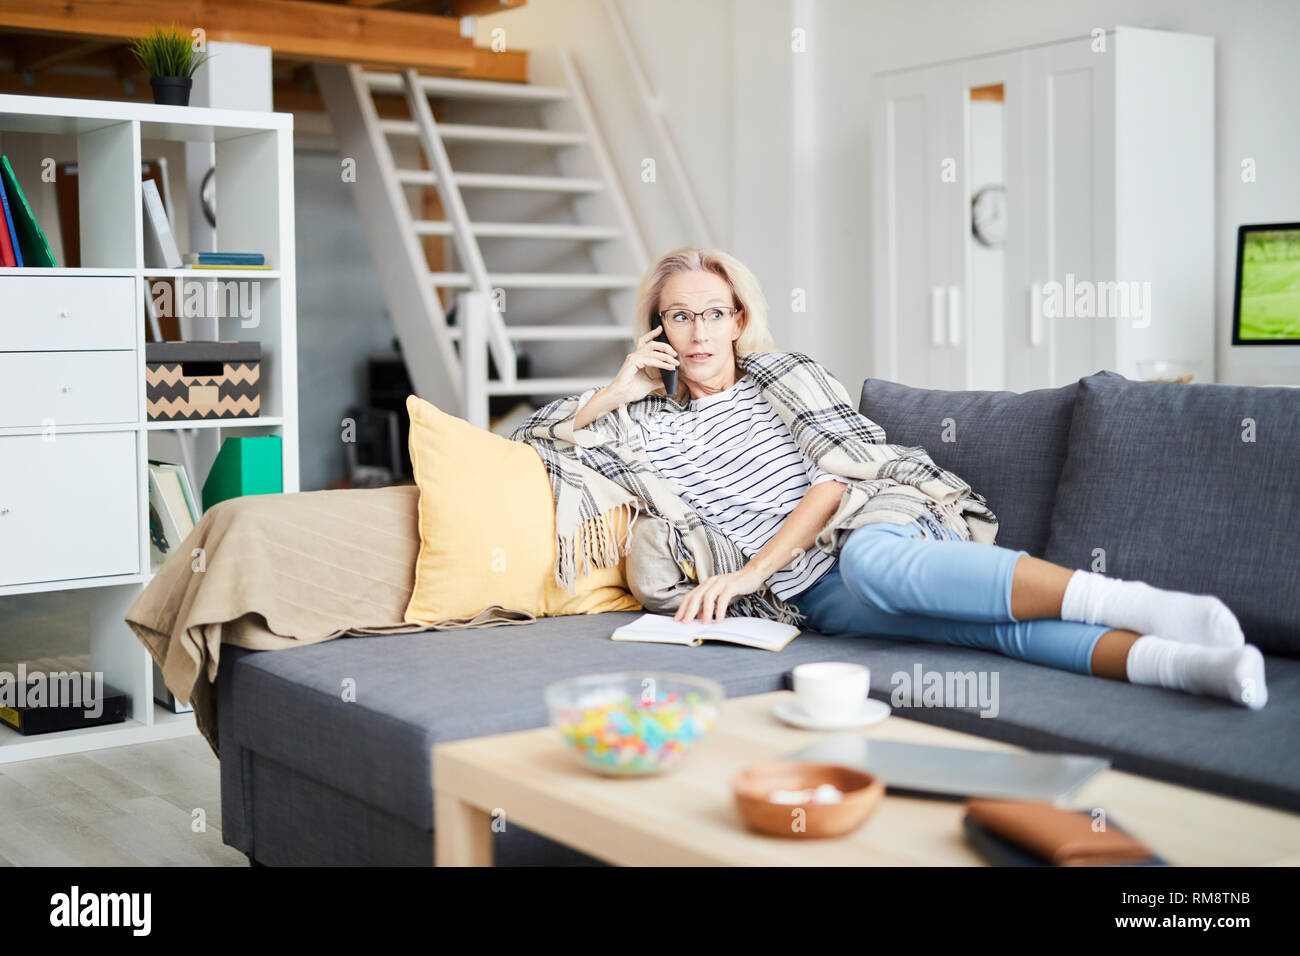 Woman Speaking by Phone at Home Stock Photo